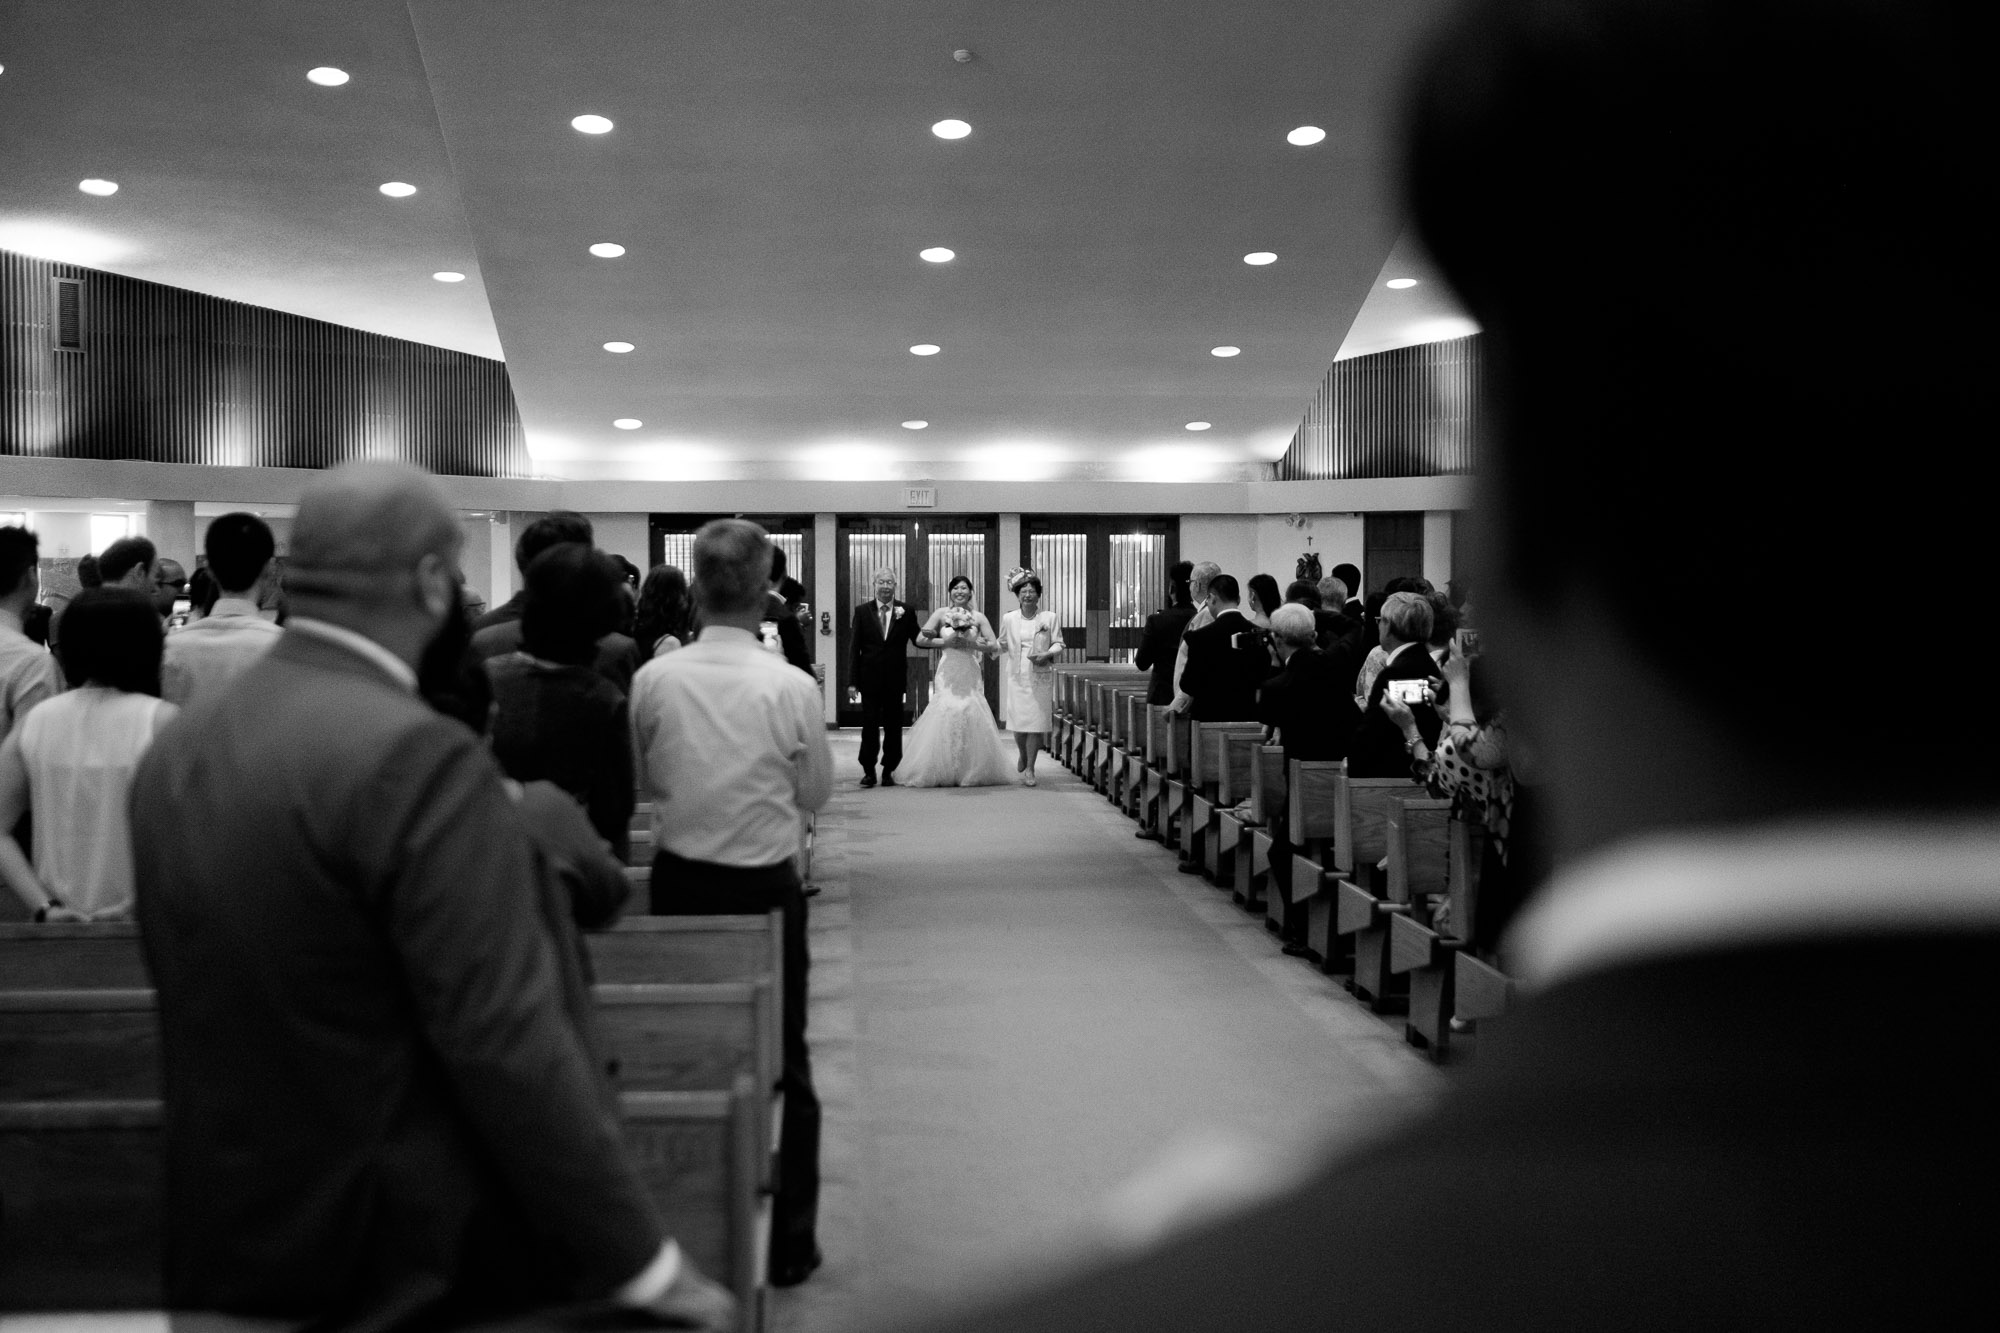 The groom sees his bride walking down the aisle for the first time during their Roman Catholic wedding ceremony in Toronto.